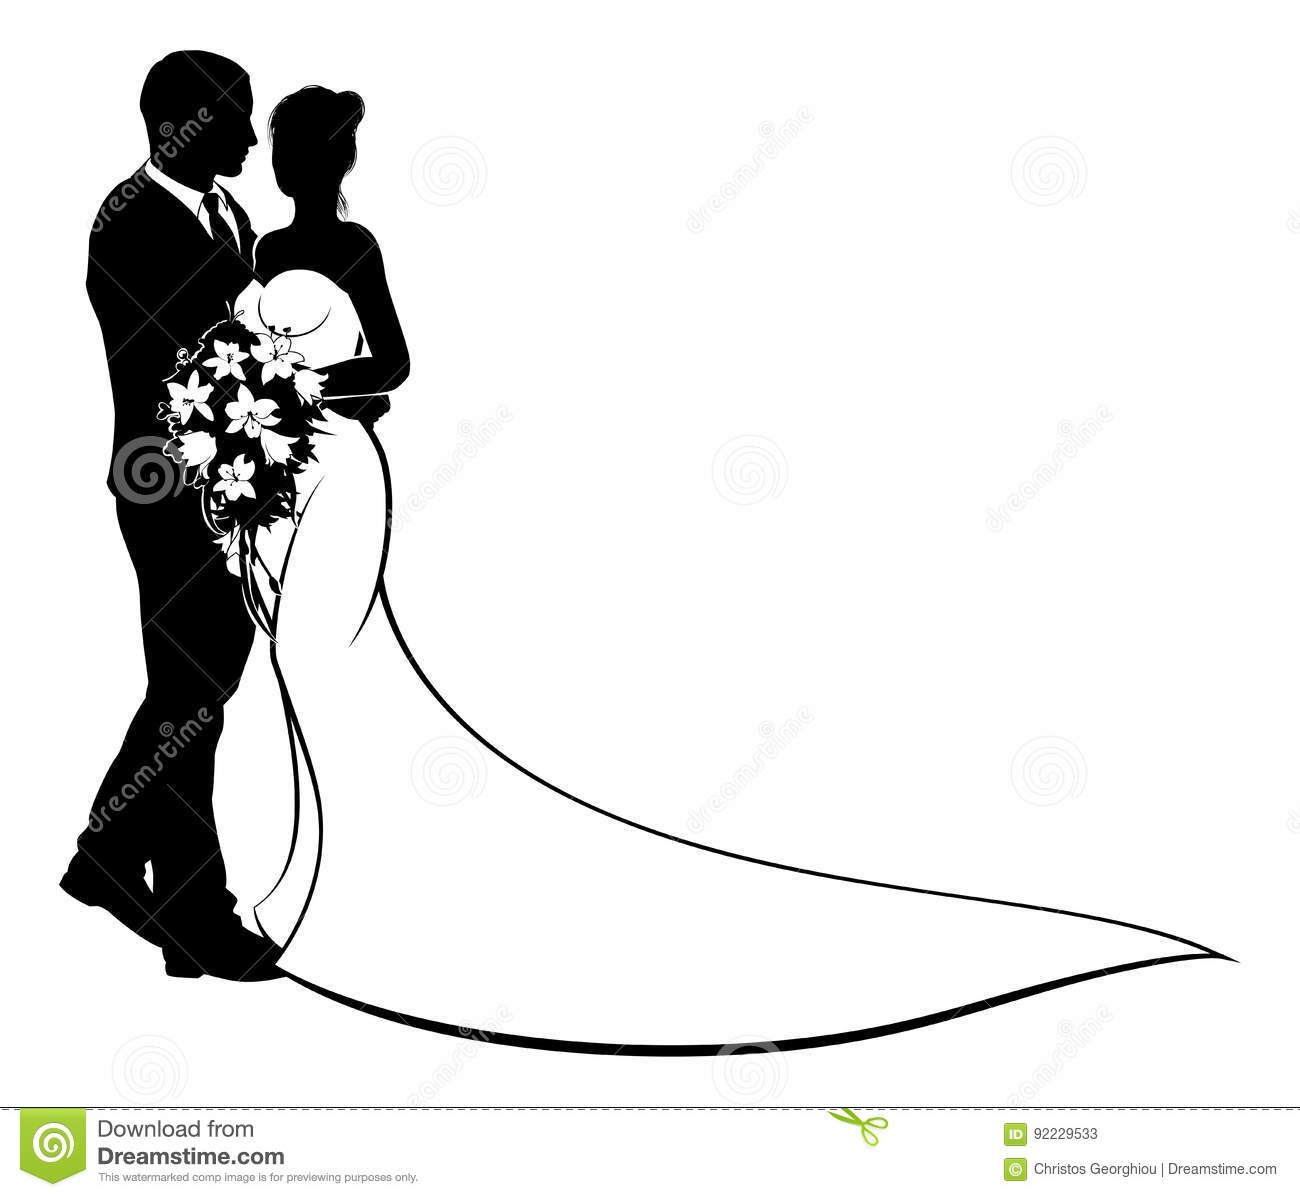 hight resolution of a bride and groom wedding couple in silhouette with in a bridal dress gown holding a floral bouquet of flowers